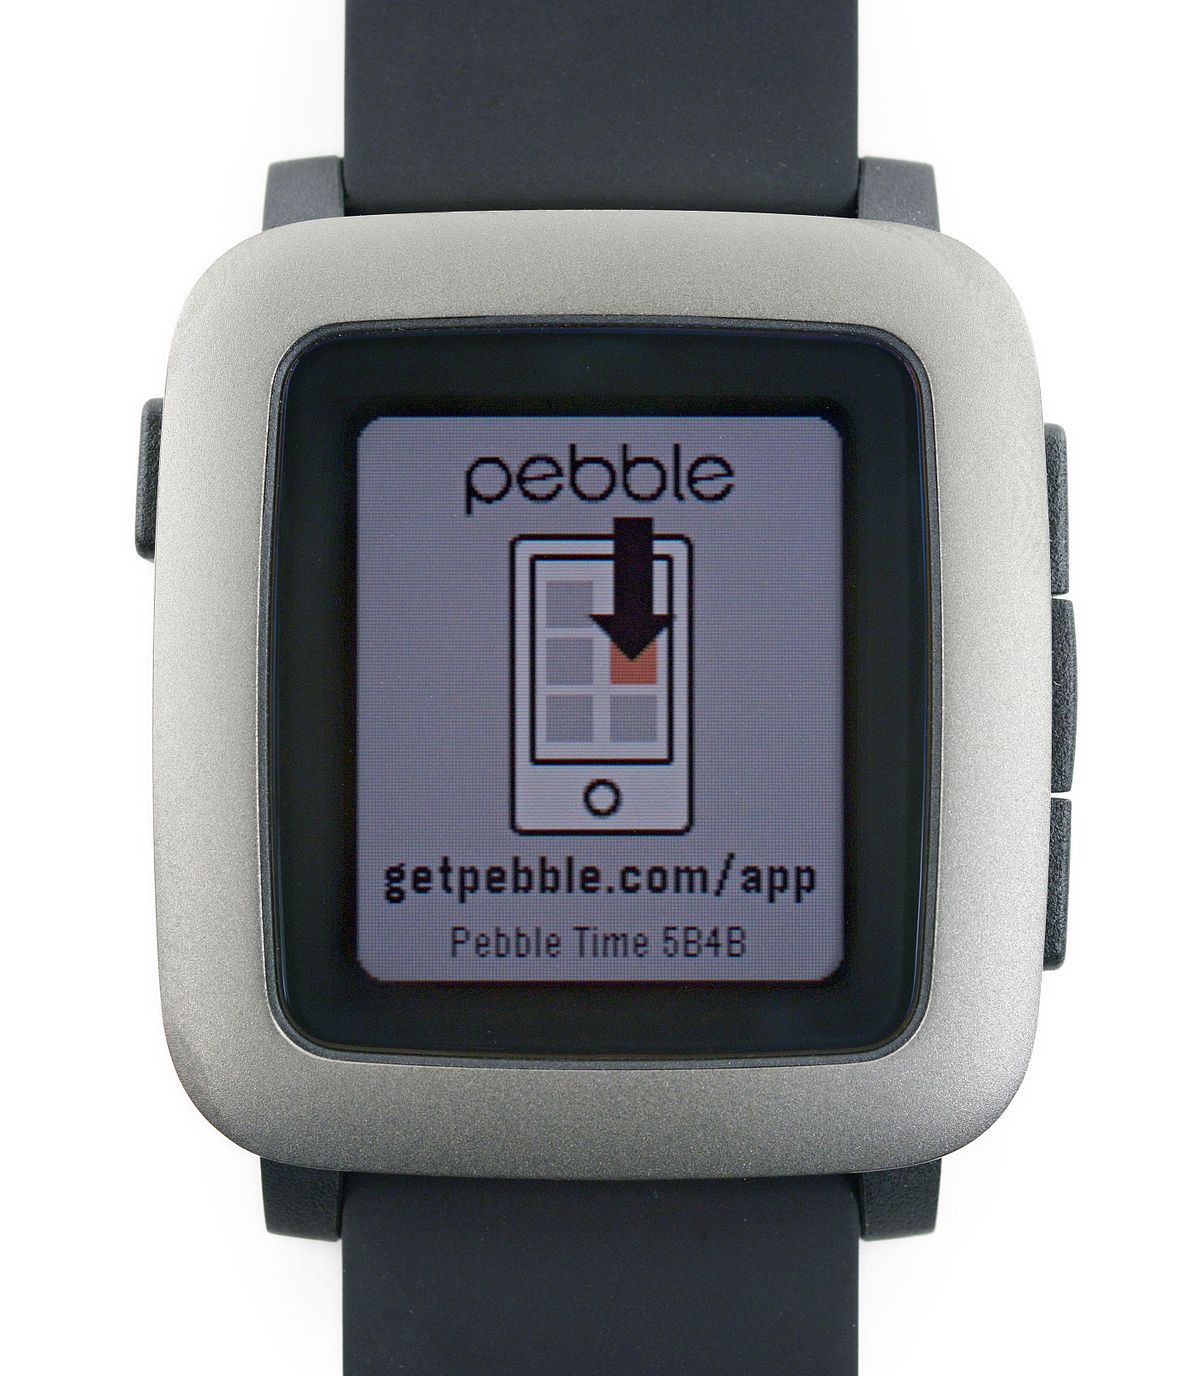 Pebble Time Wikipedia